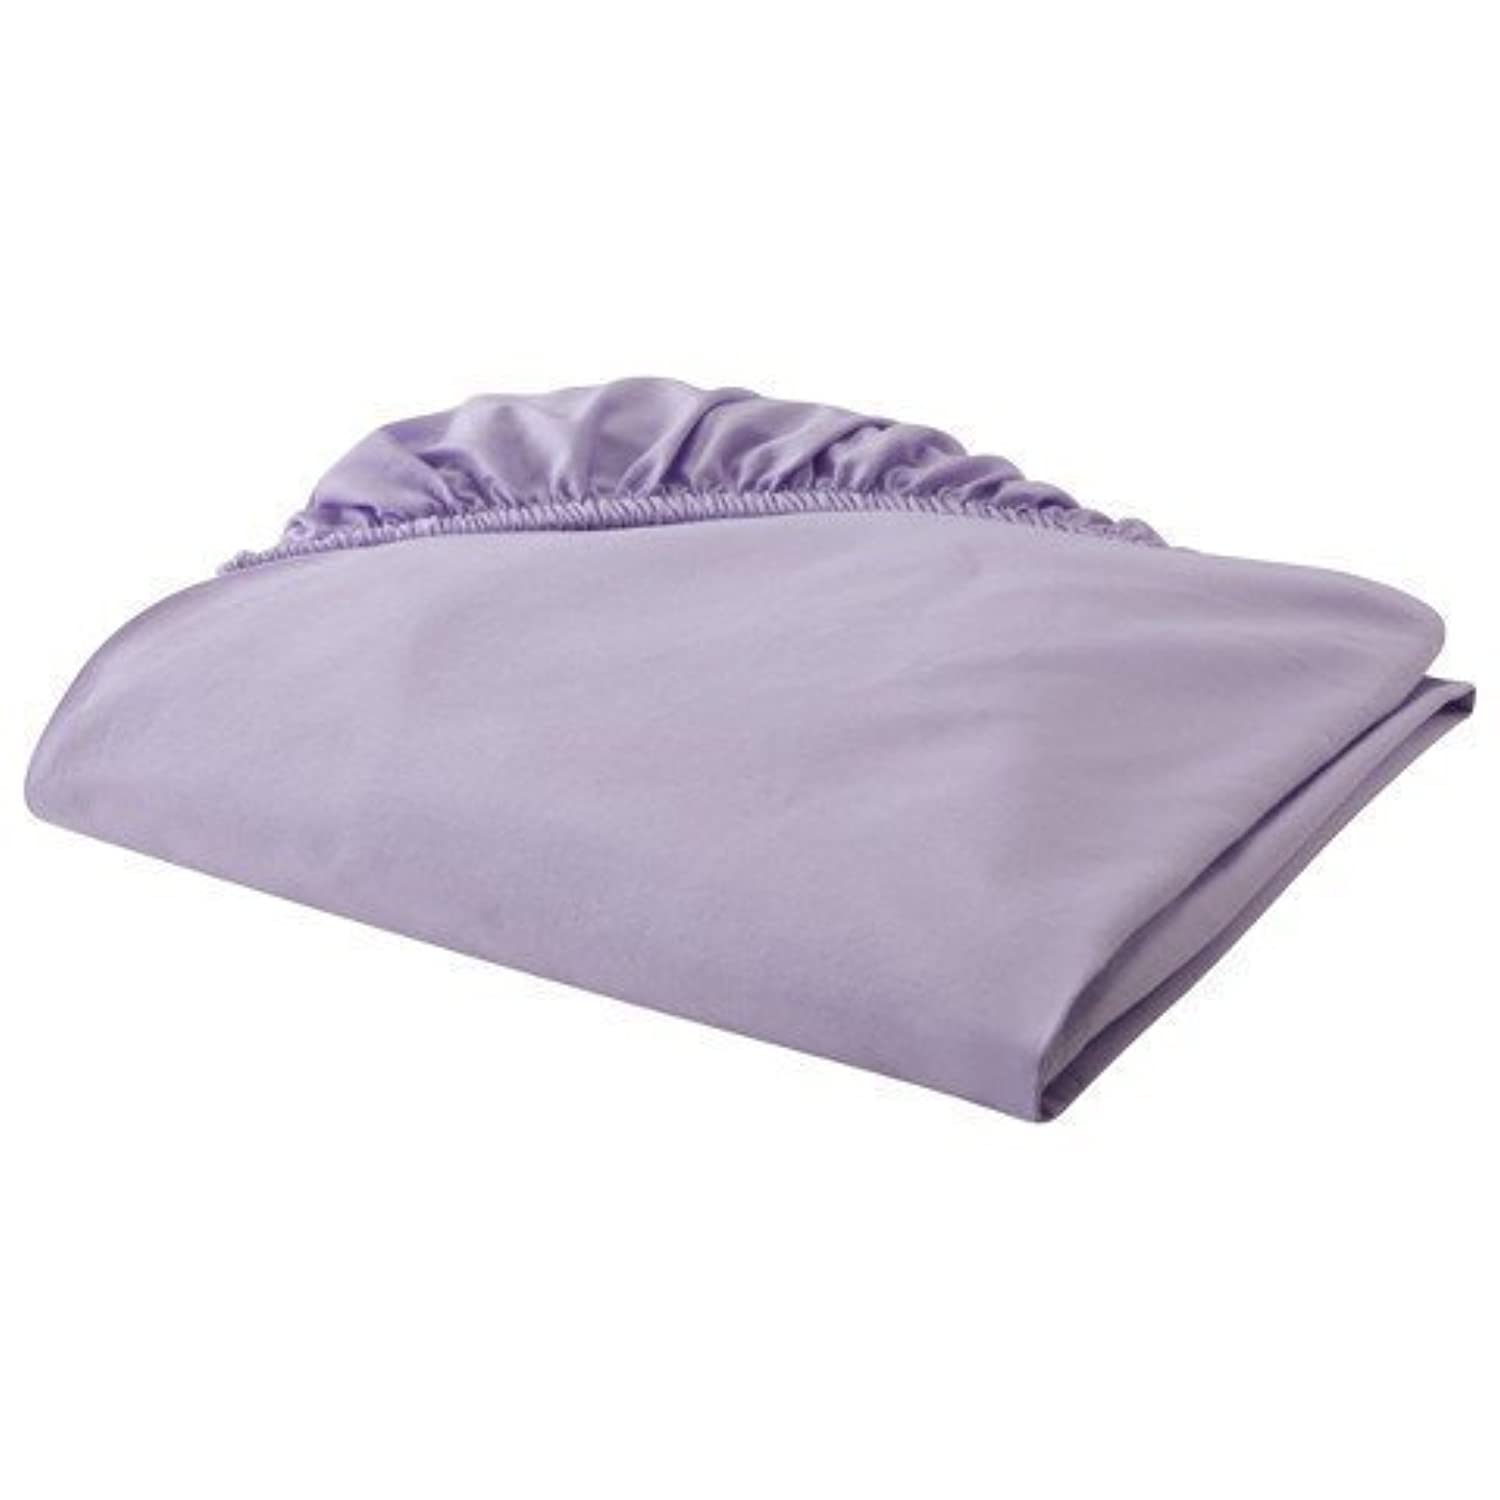 Circo Woven Fitted Crib Sheet - Lavender by Circo